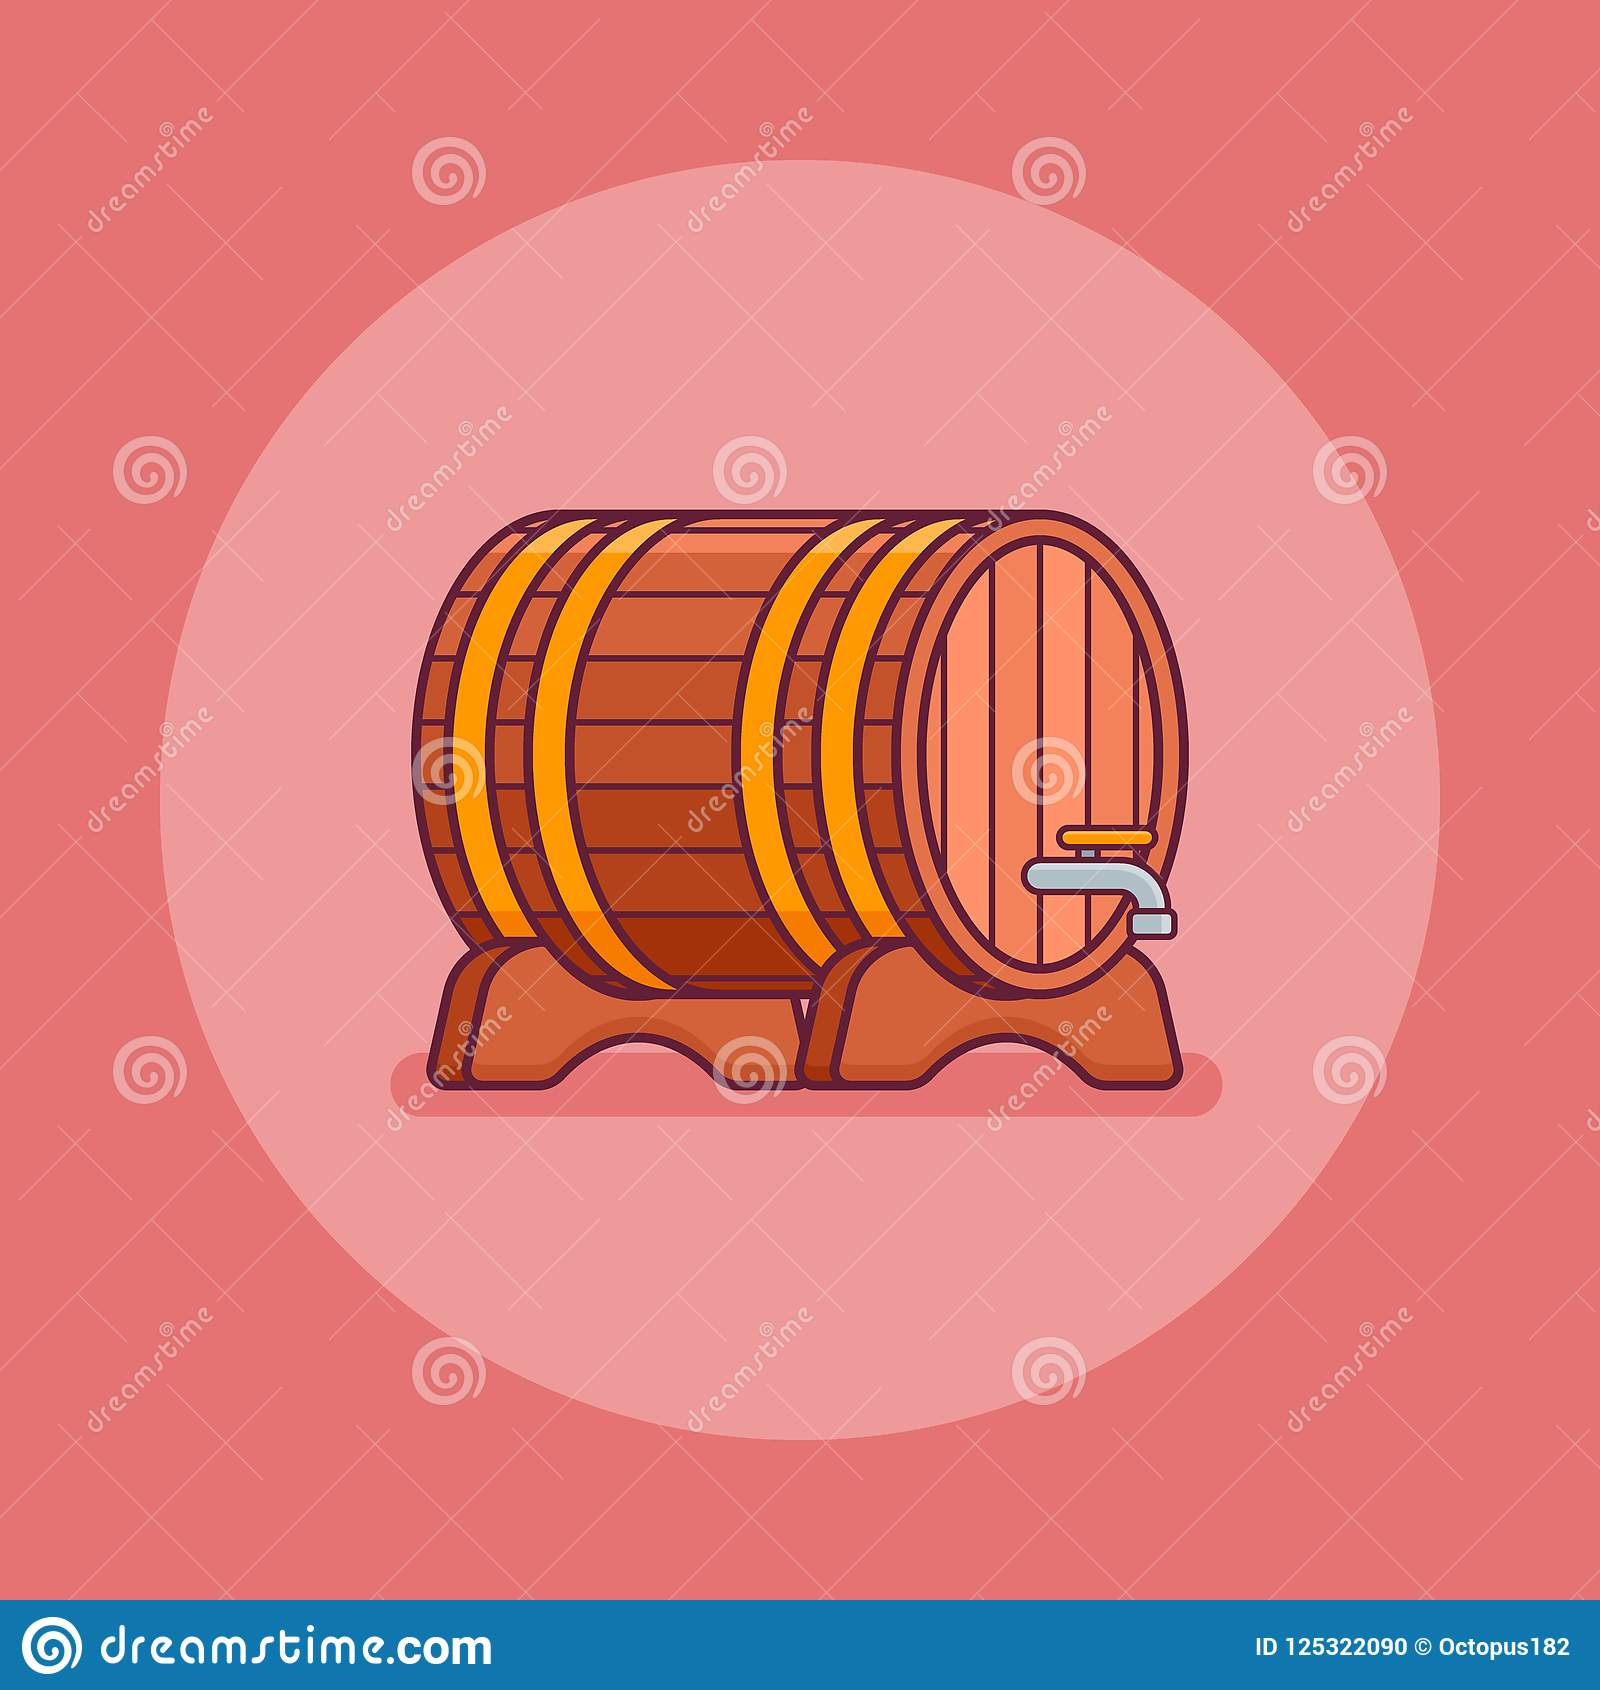 Wine Or Beer Wooden Barrel Flat Line Icon Vector Illustration Stock Vector Illustration Of Liquid Graphic 125322090